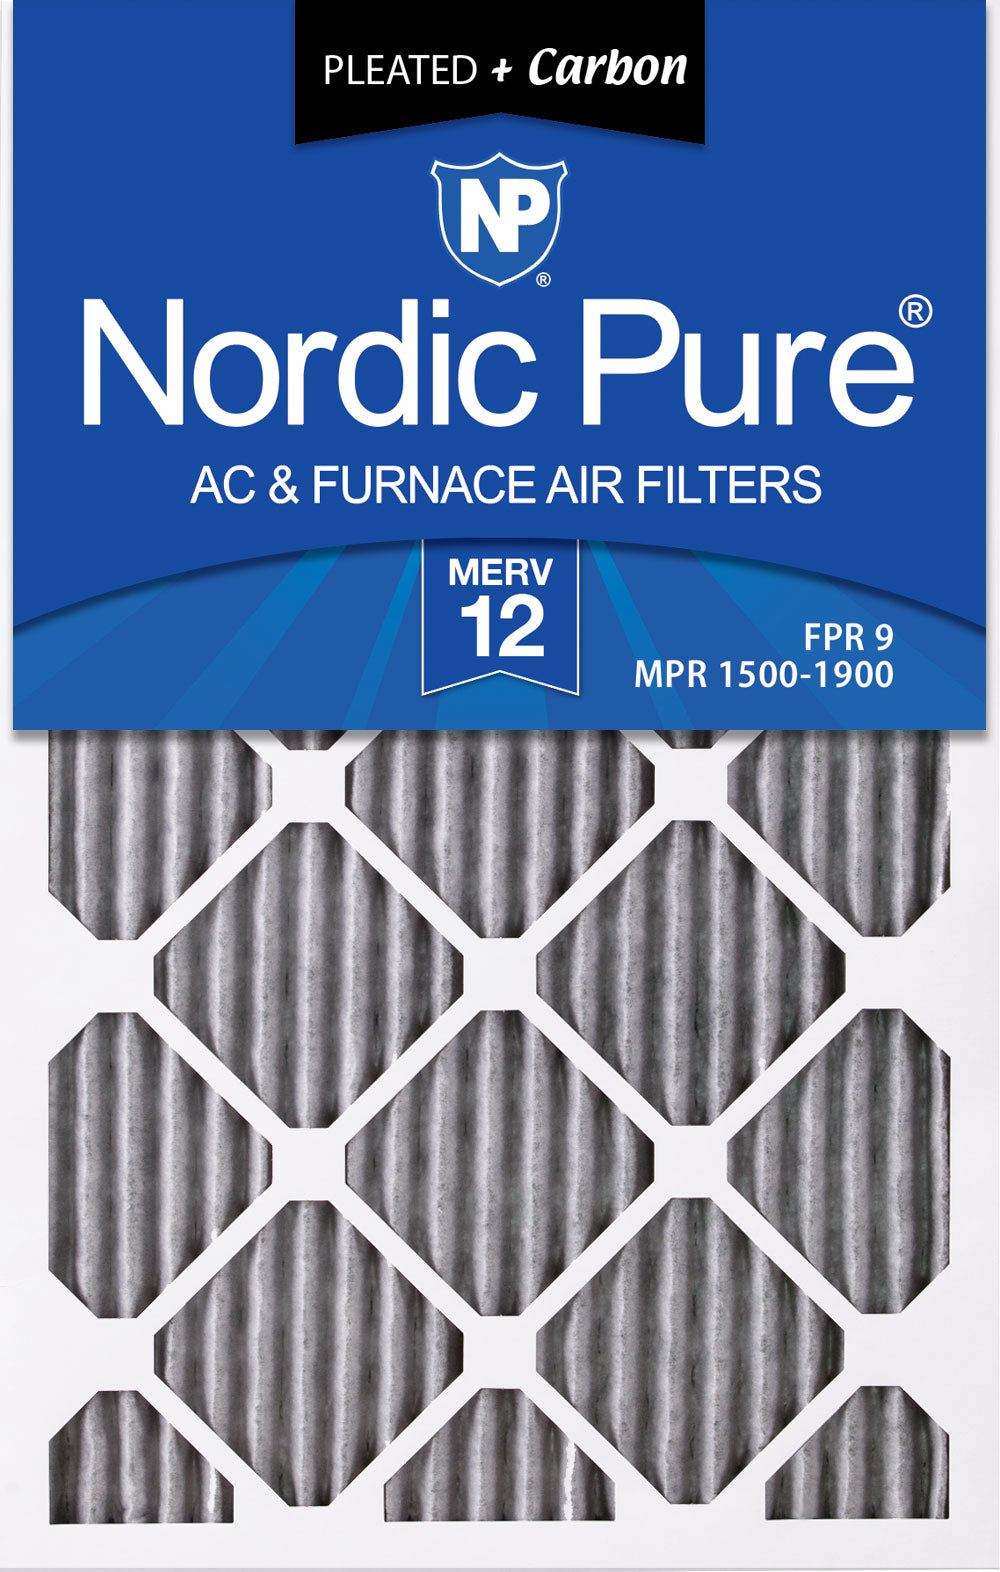 14x30x1 Furnace Air Filters MERV 12 Pleated Plus Carbon 3 Pack